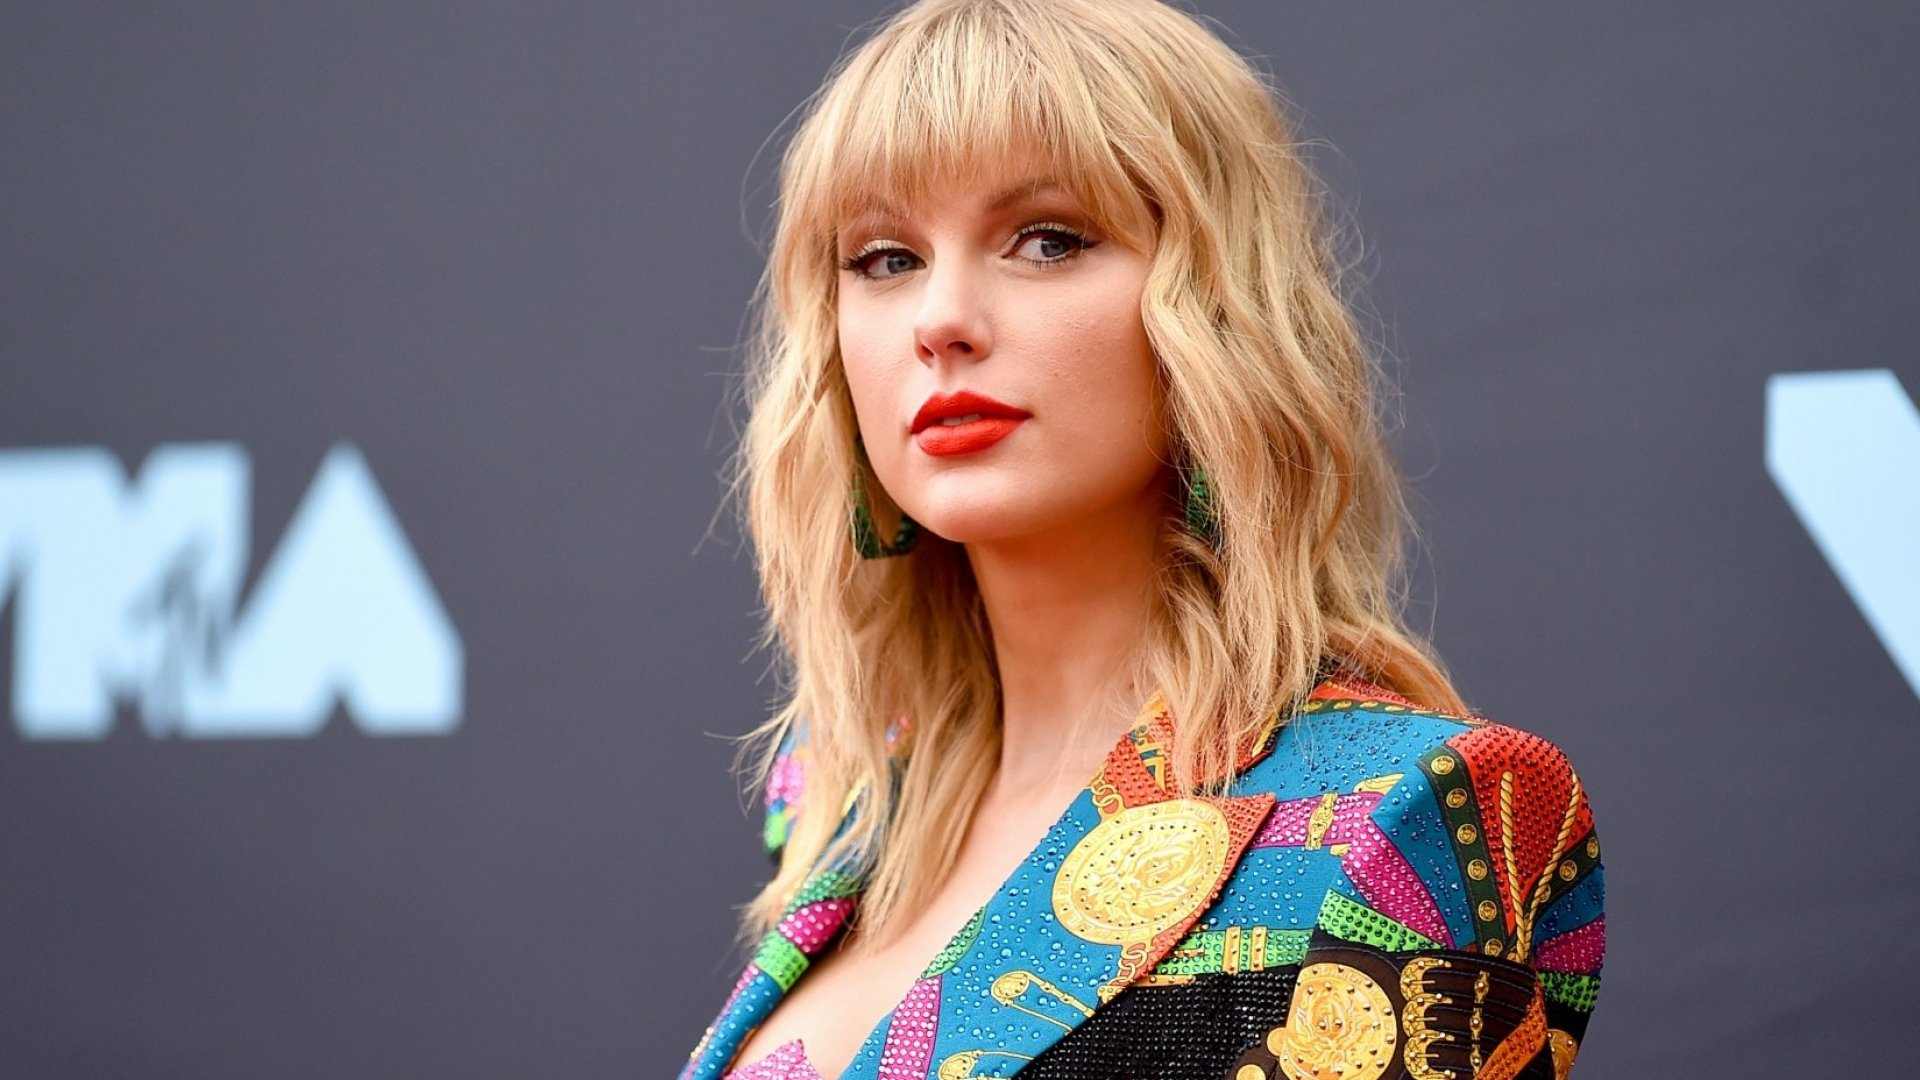 Taylor Swift Just Announced an Unusual Bonus Track Strategy, and It's a Brilliant Marketing Move